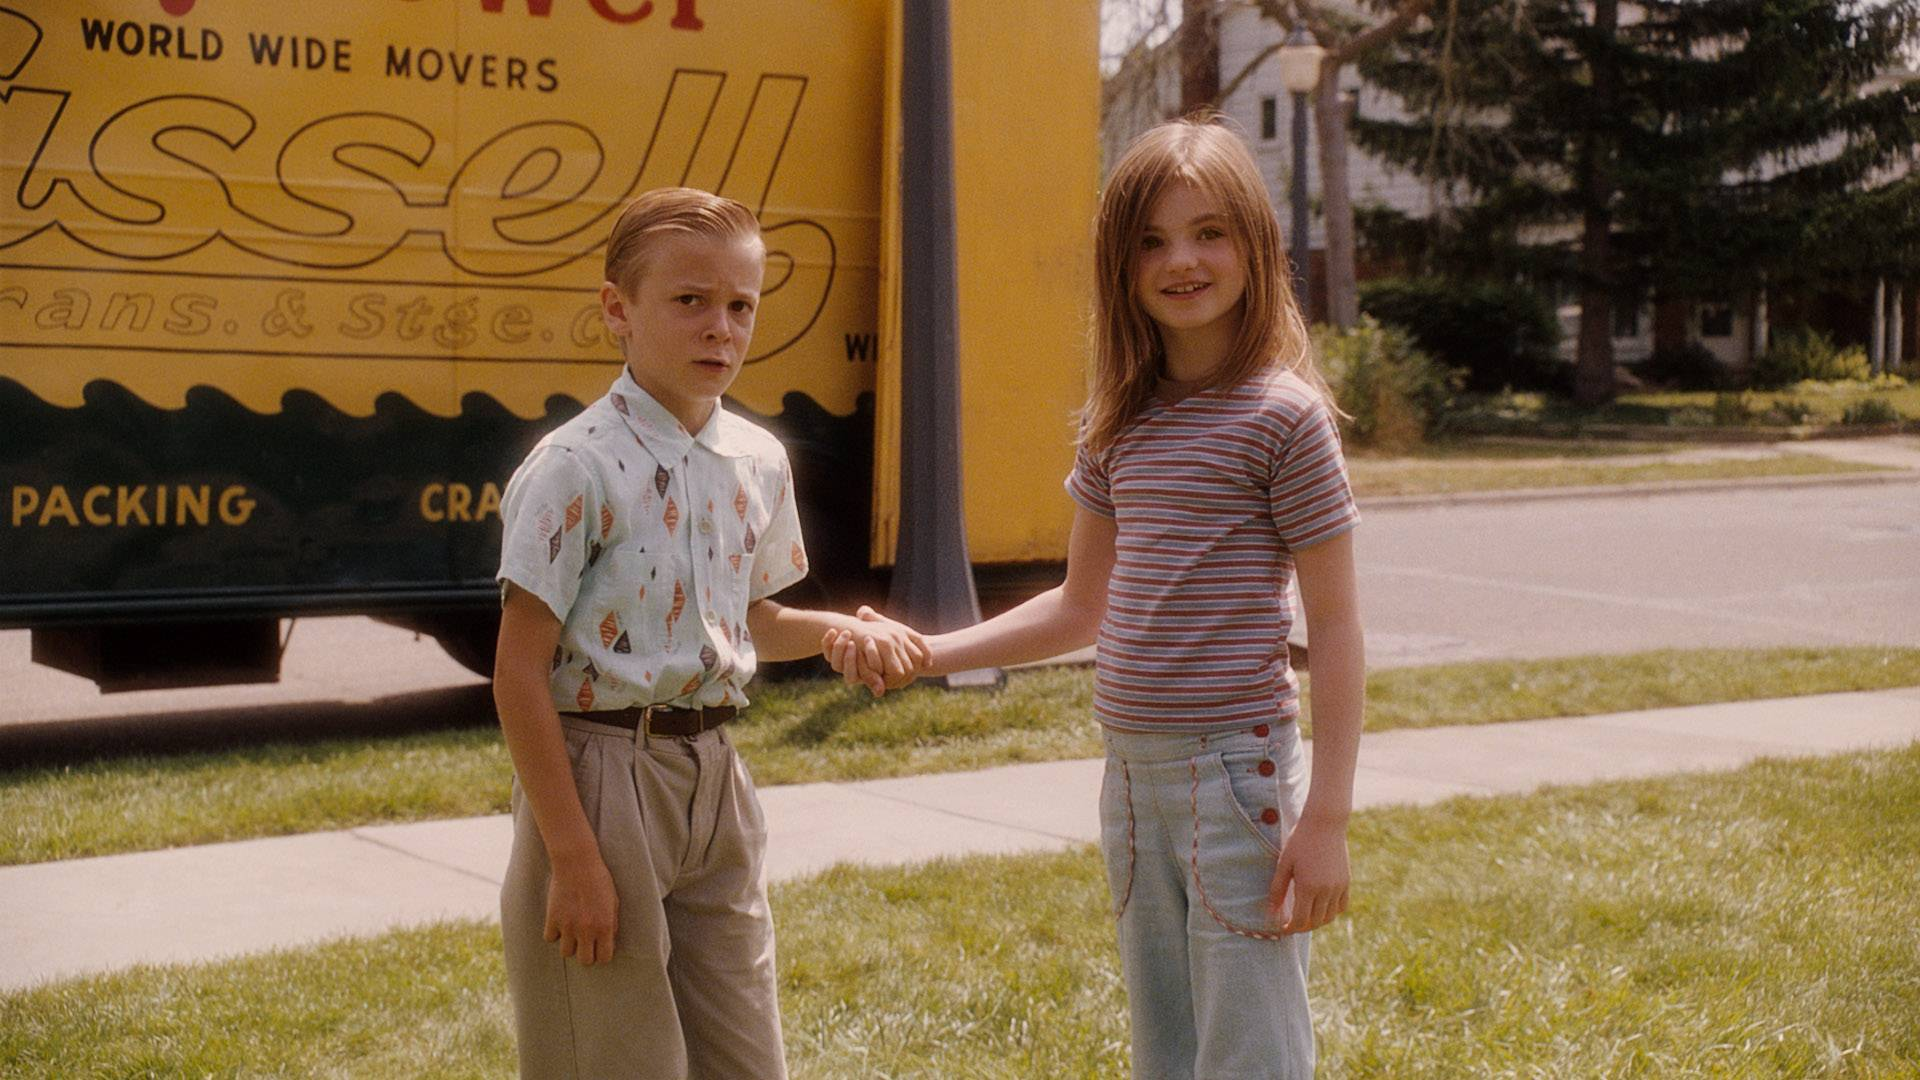 (L-r) RYAN KETZNER as Young Bryce and MORGAN LILY as Young Juli in Castle Rock EntertainmentÕs coming-of-age romantic comedy ÒFLIPPED,Ó a Warner Bros. Pictures release.